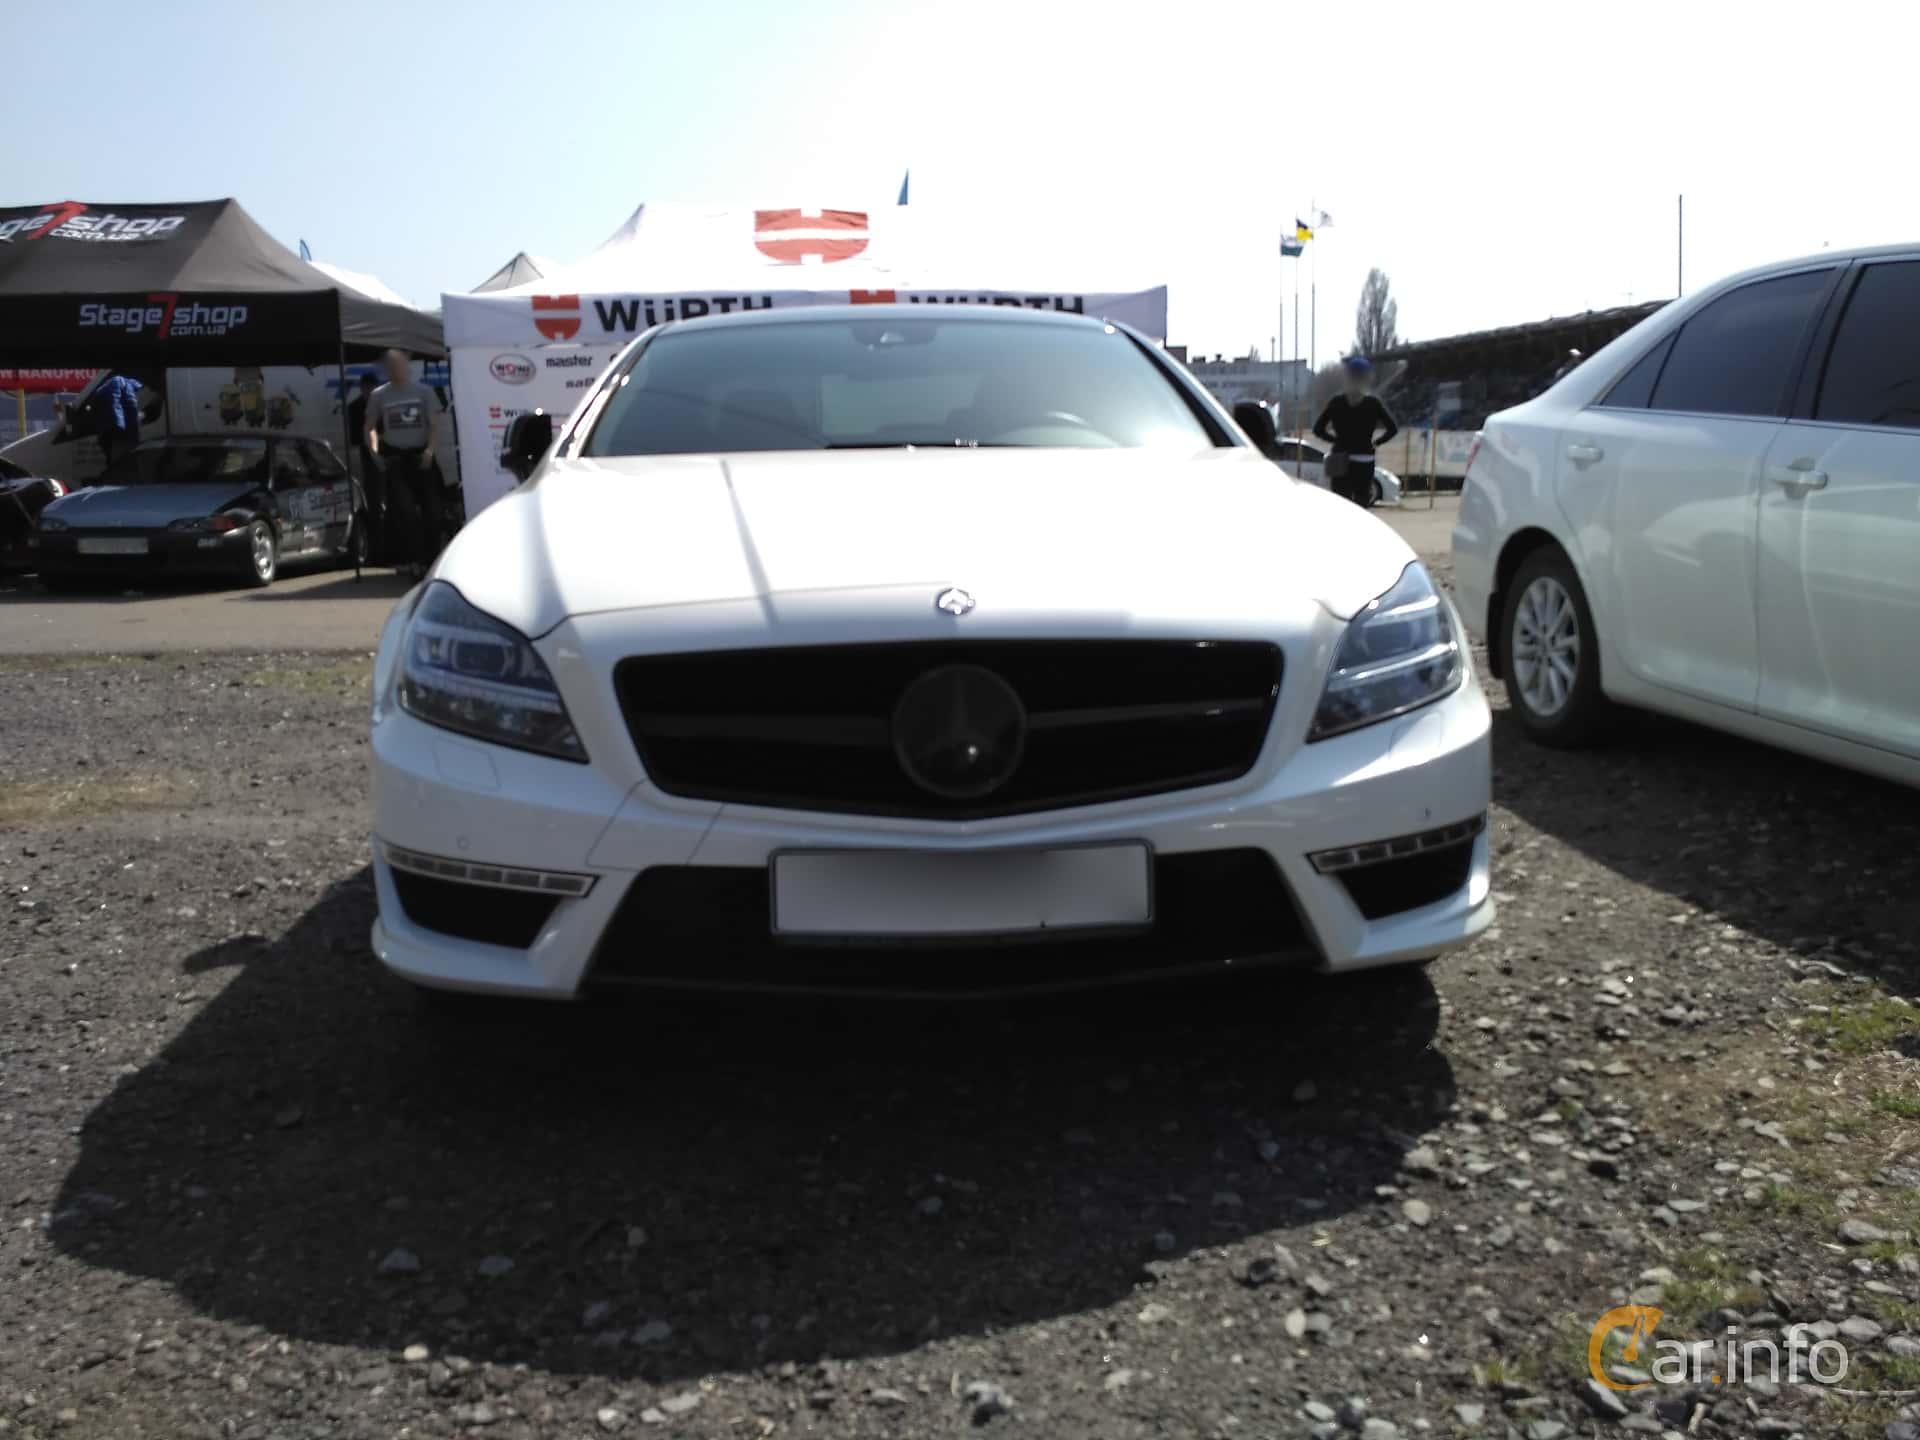 Mercedes-Benz CLS 63 AMG S 4MATIC 5.5 V8 4MATIC , 585hp, 2013 at Ltava Time Attack 1st Stage